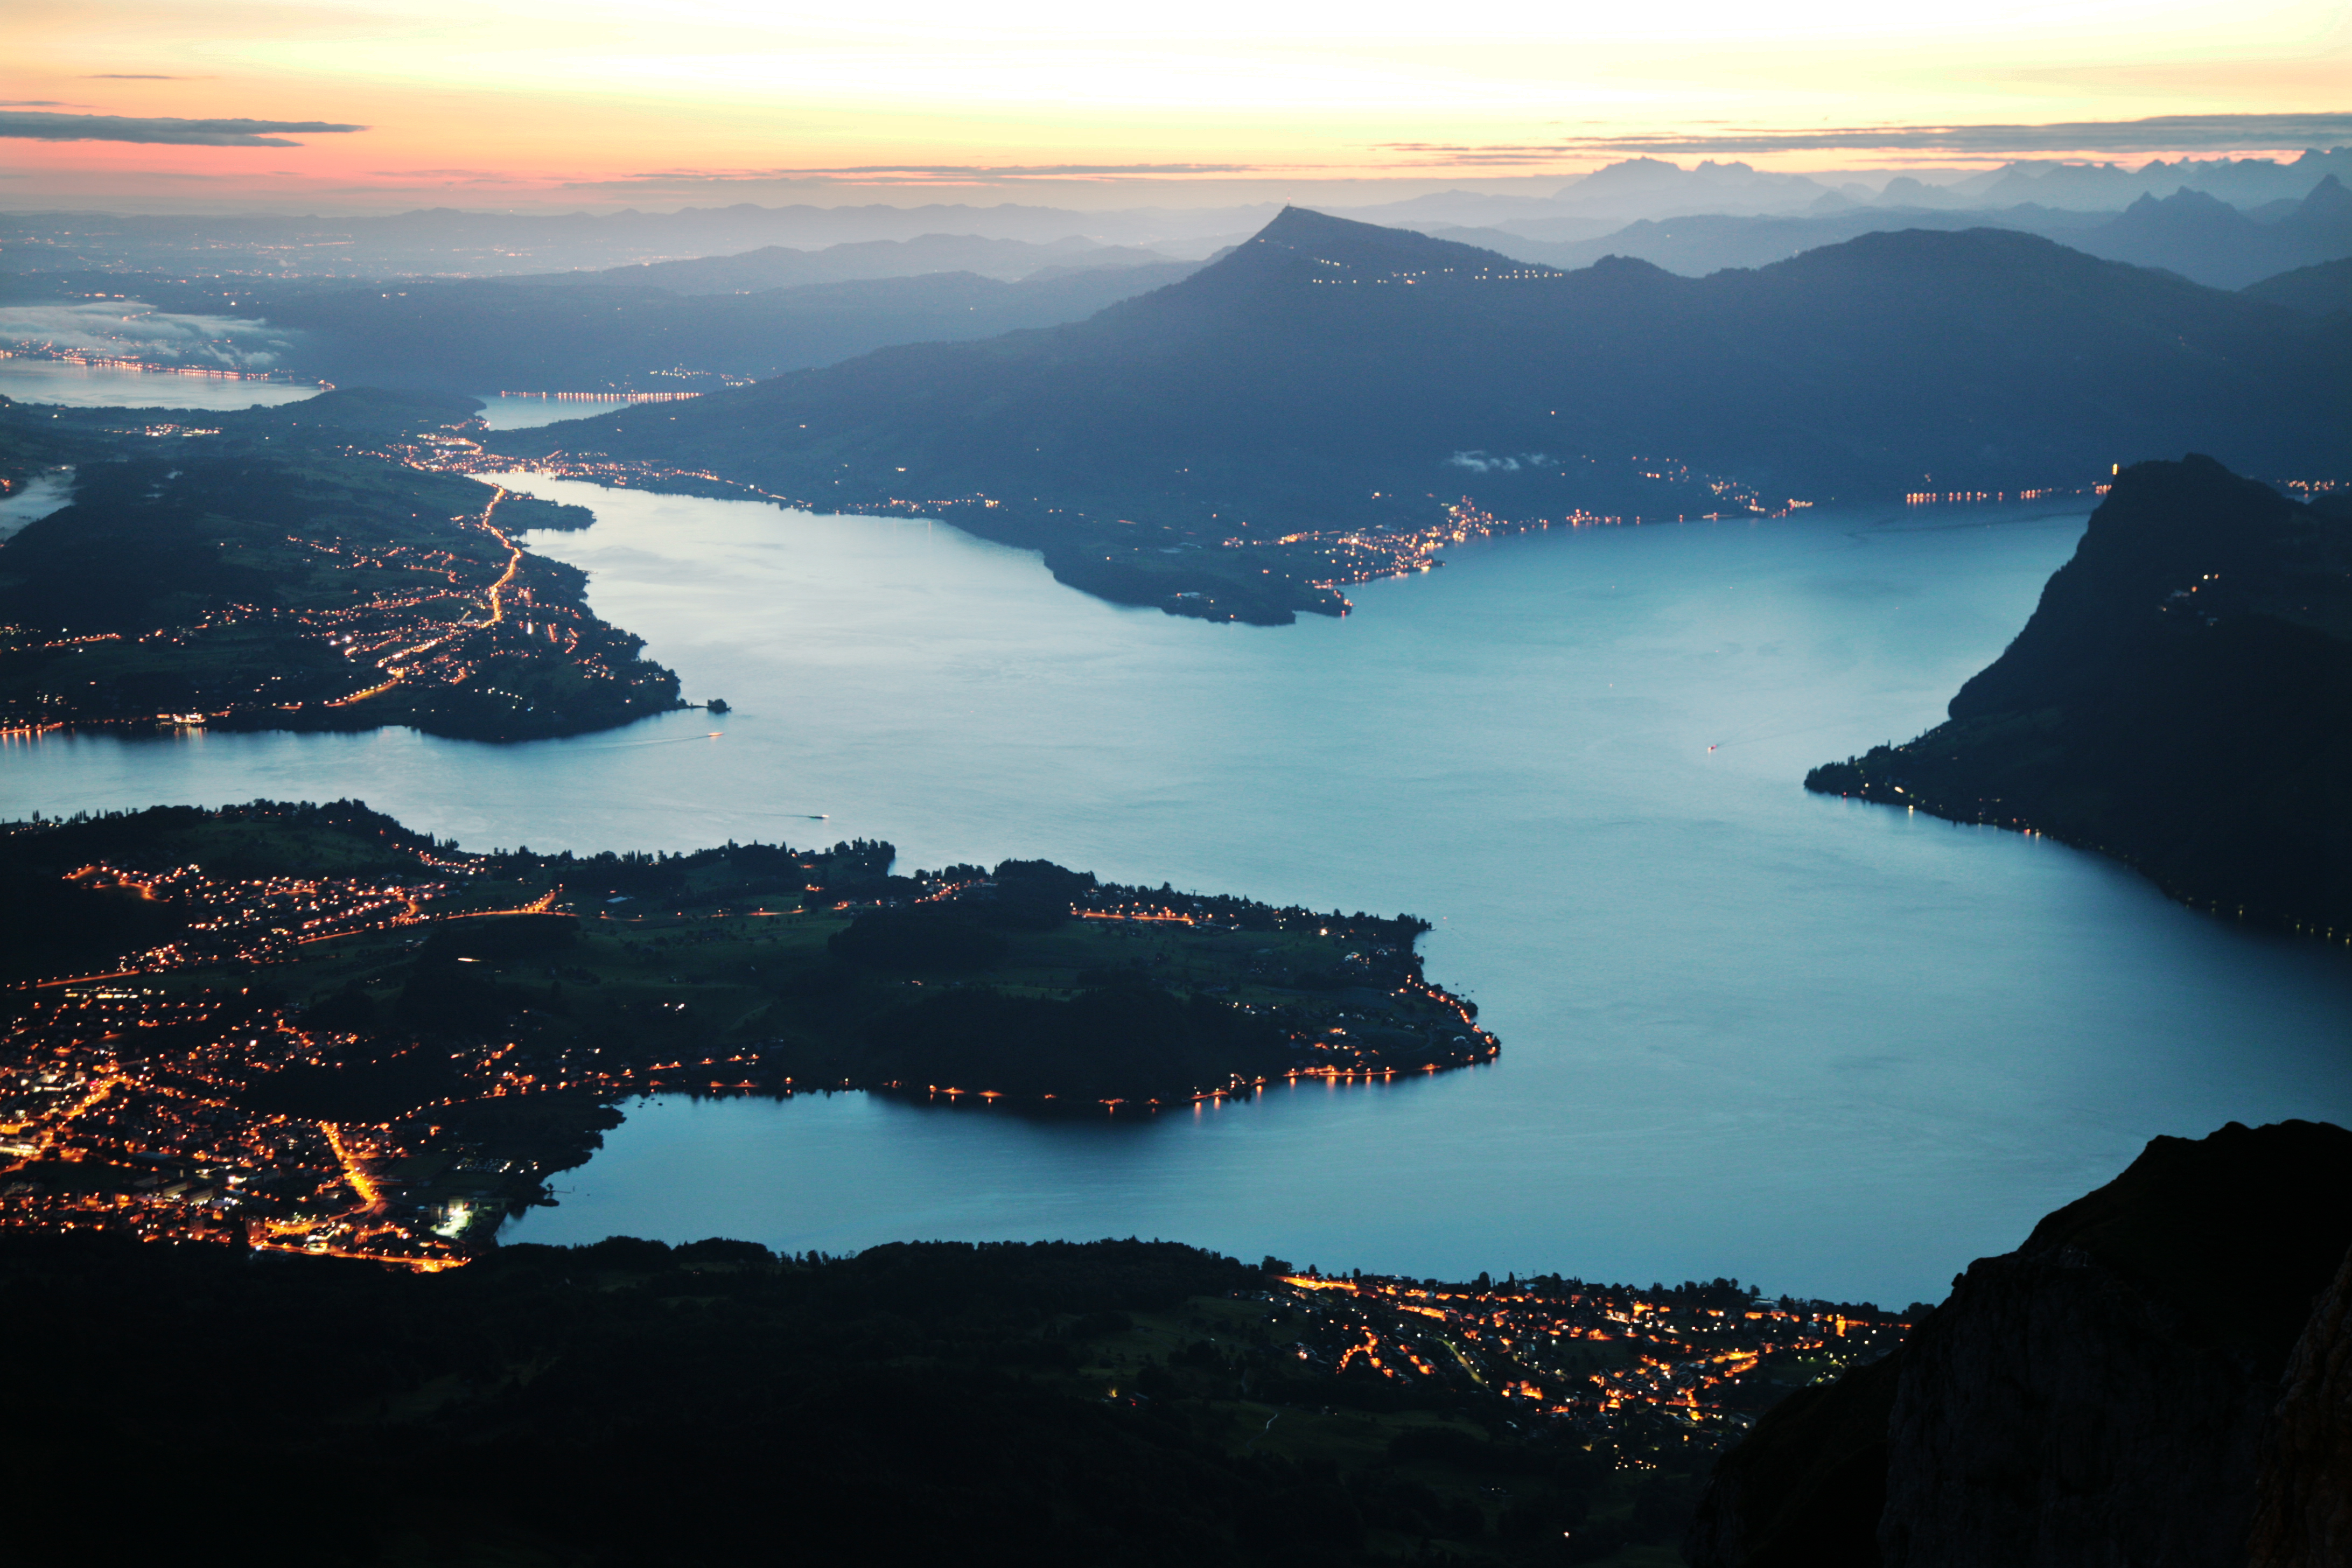 View from the Pilatus on the Lake of Lucerne